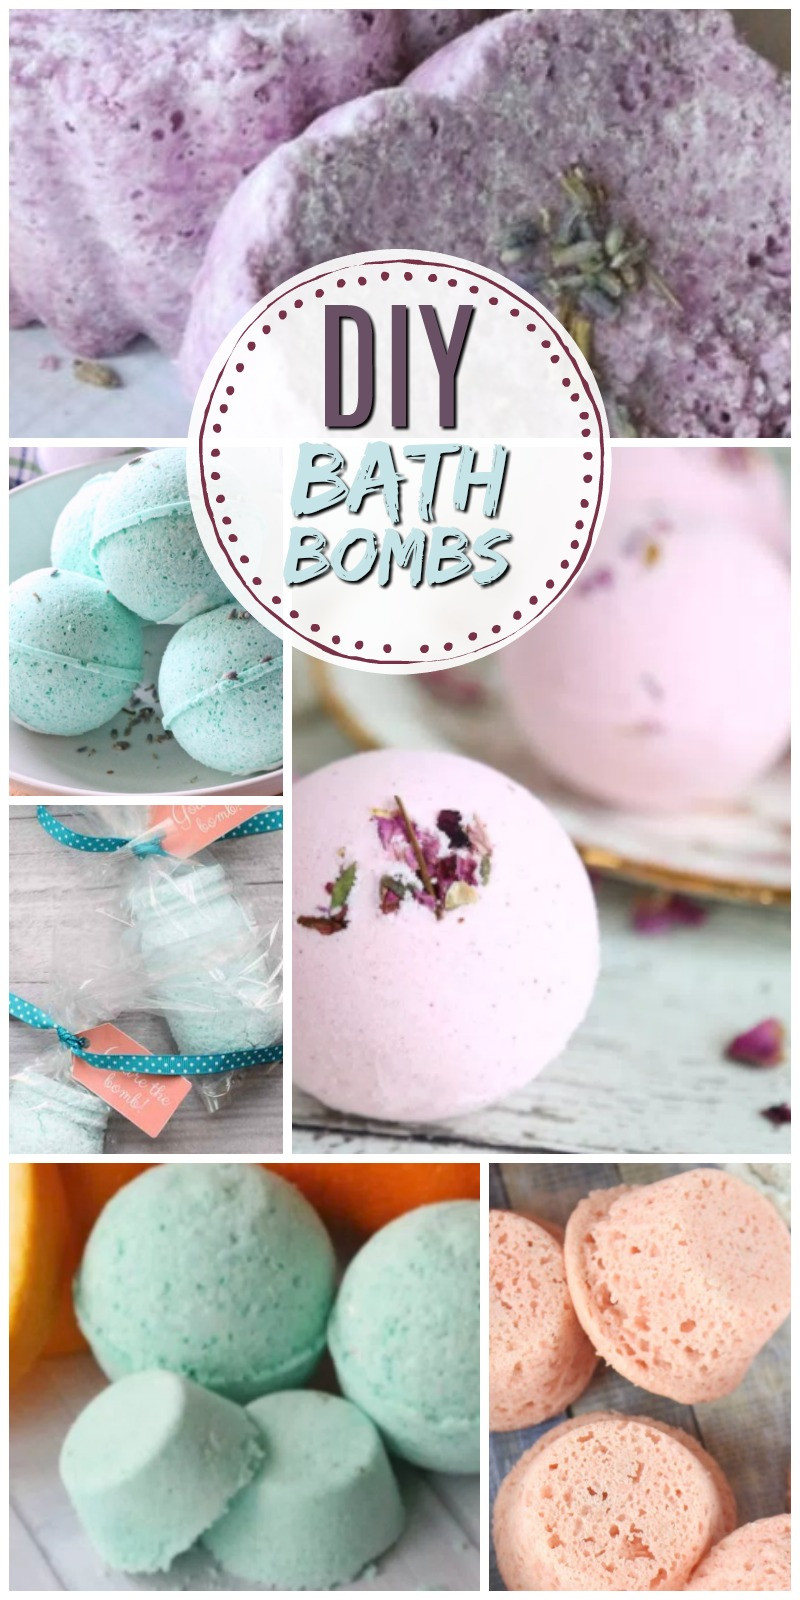 Best ideas about DIY Bath Bombs For Kids . Save or Pin The Best DIY Bath Bomb Recipes to Make Yourself Creative Now.